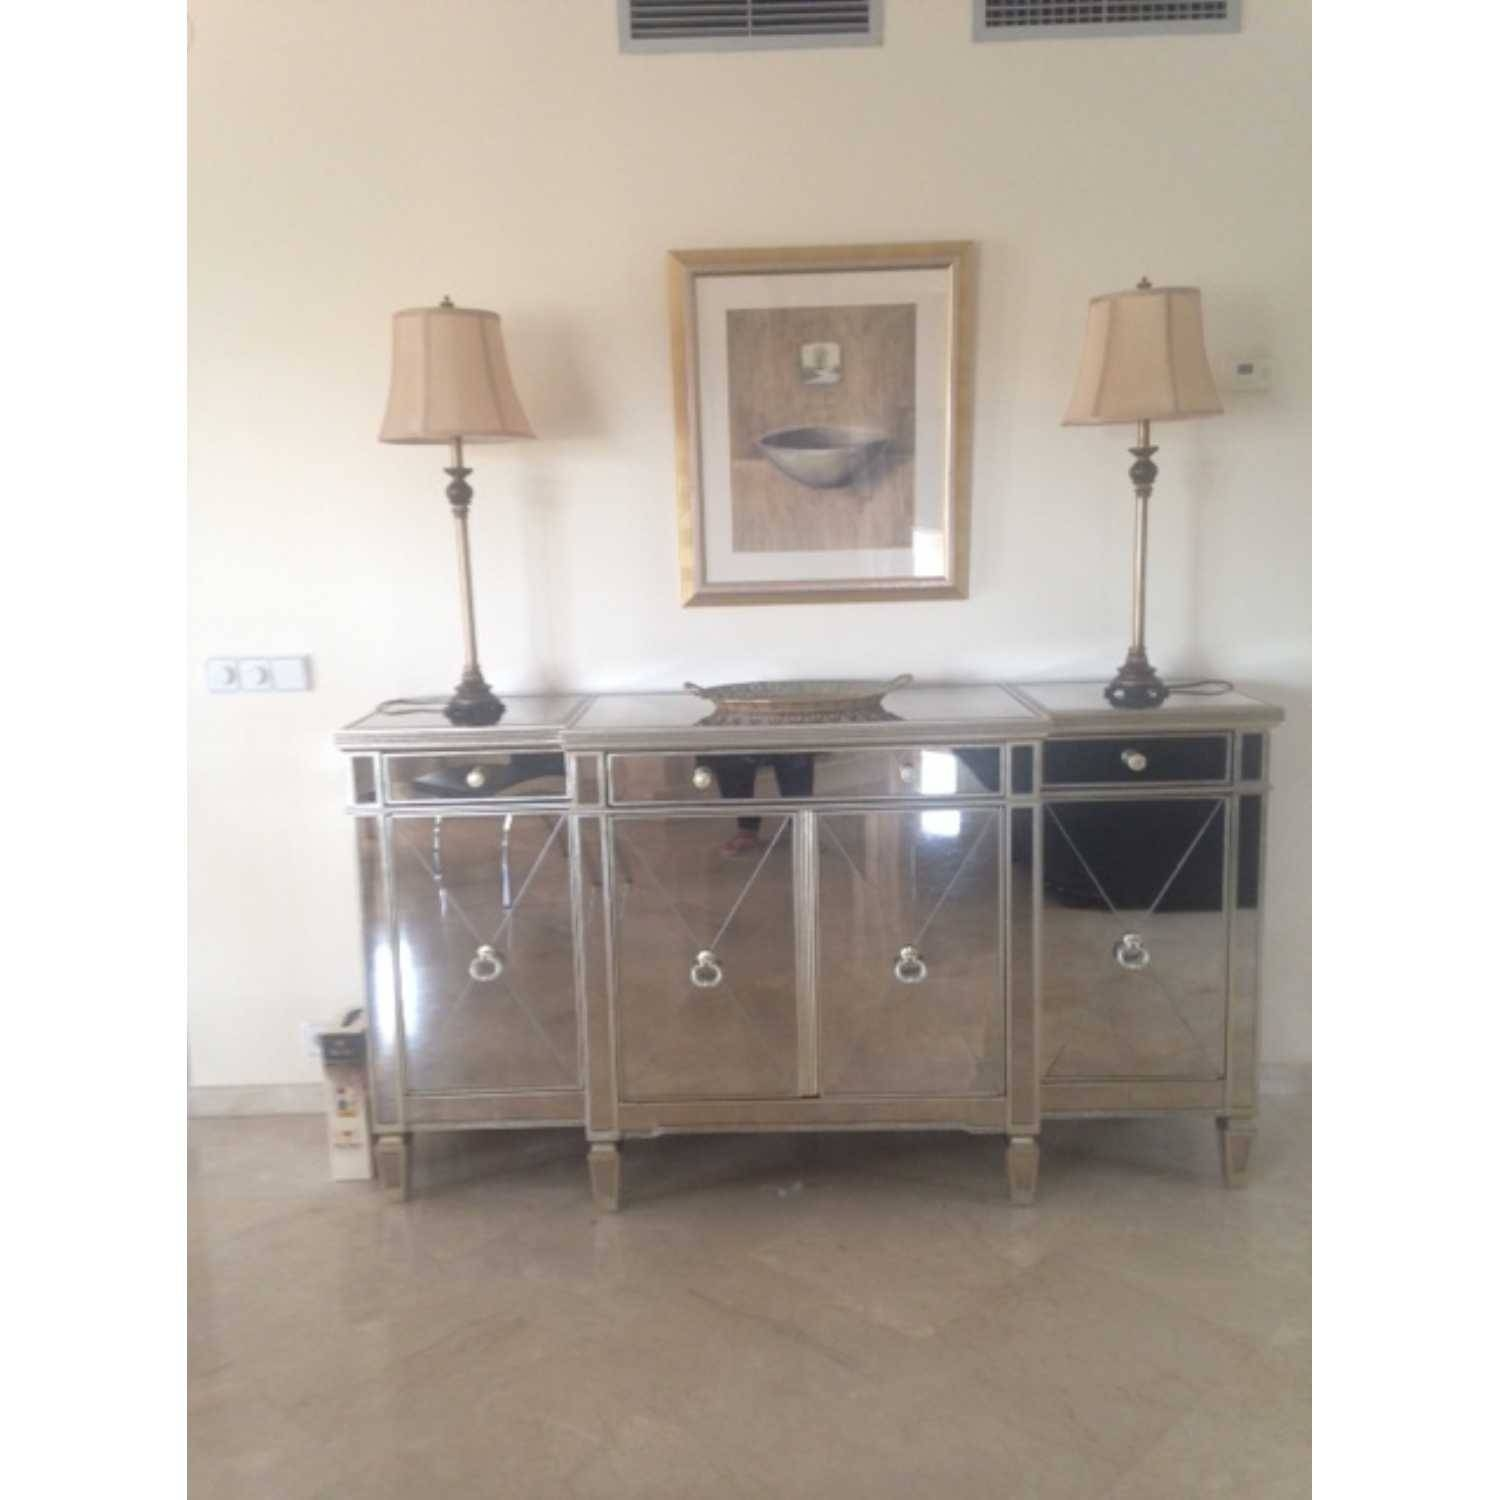 Large Antique Seville Venetian Mirrored Glass Sideboard 4 Door Pertaining To Small Mirrored Sideboard (#8 of 20)